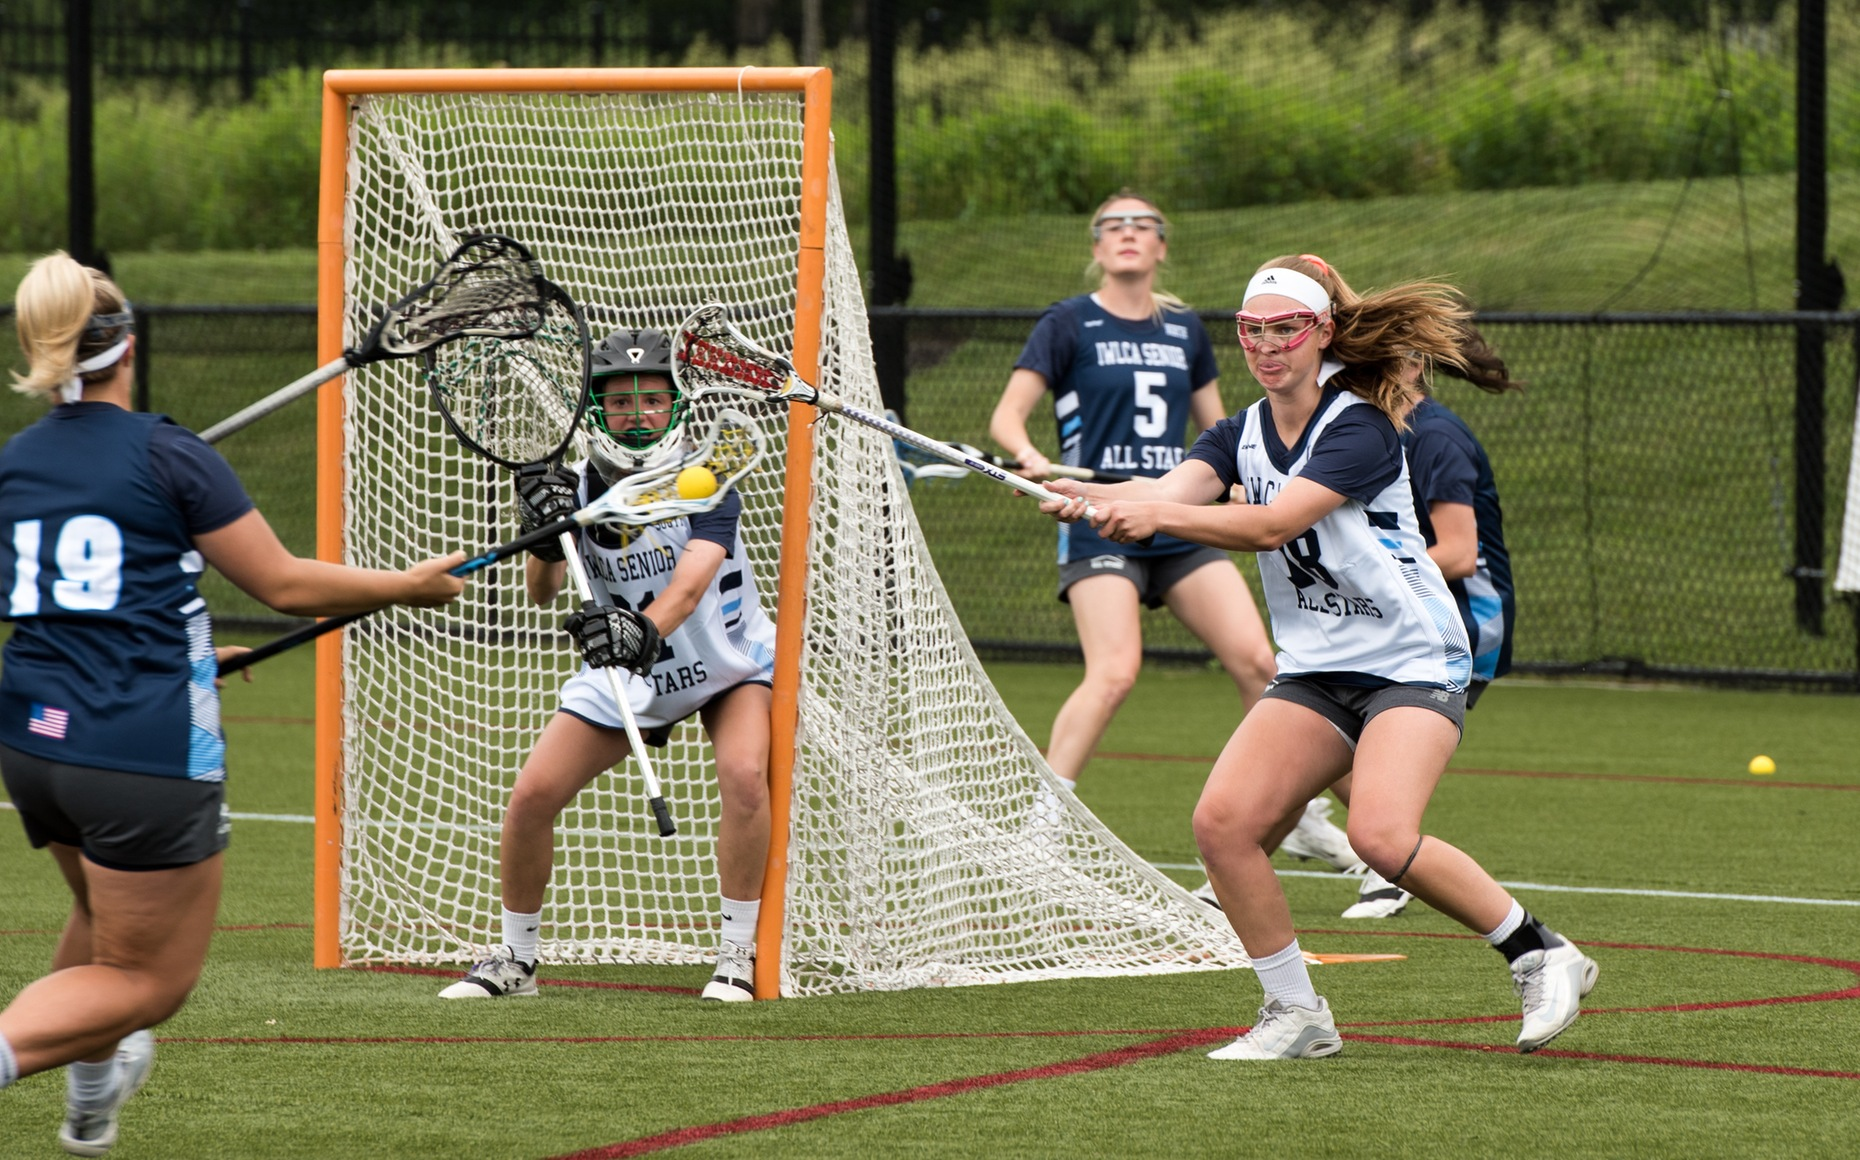 Rachel Henderson plays defense in the IWLCA Division III senior all-star game